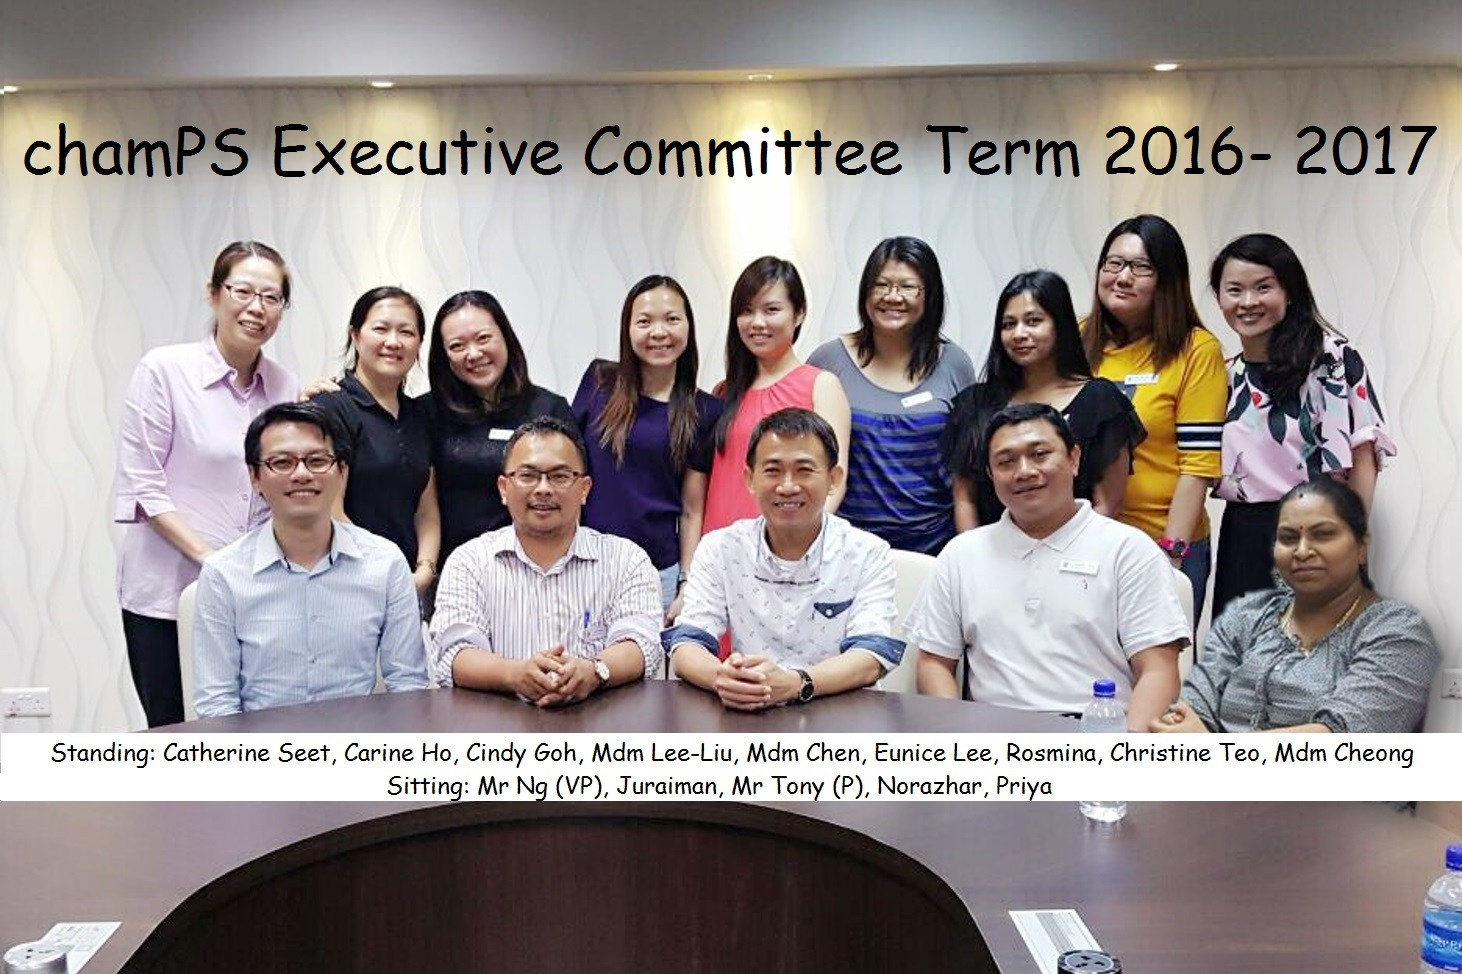 chamPS Exco updated.jpg